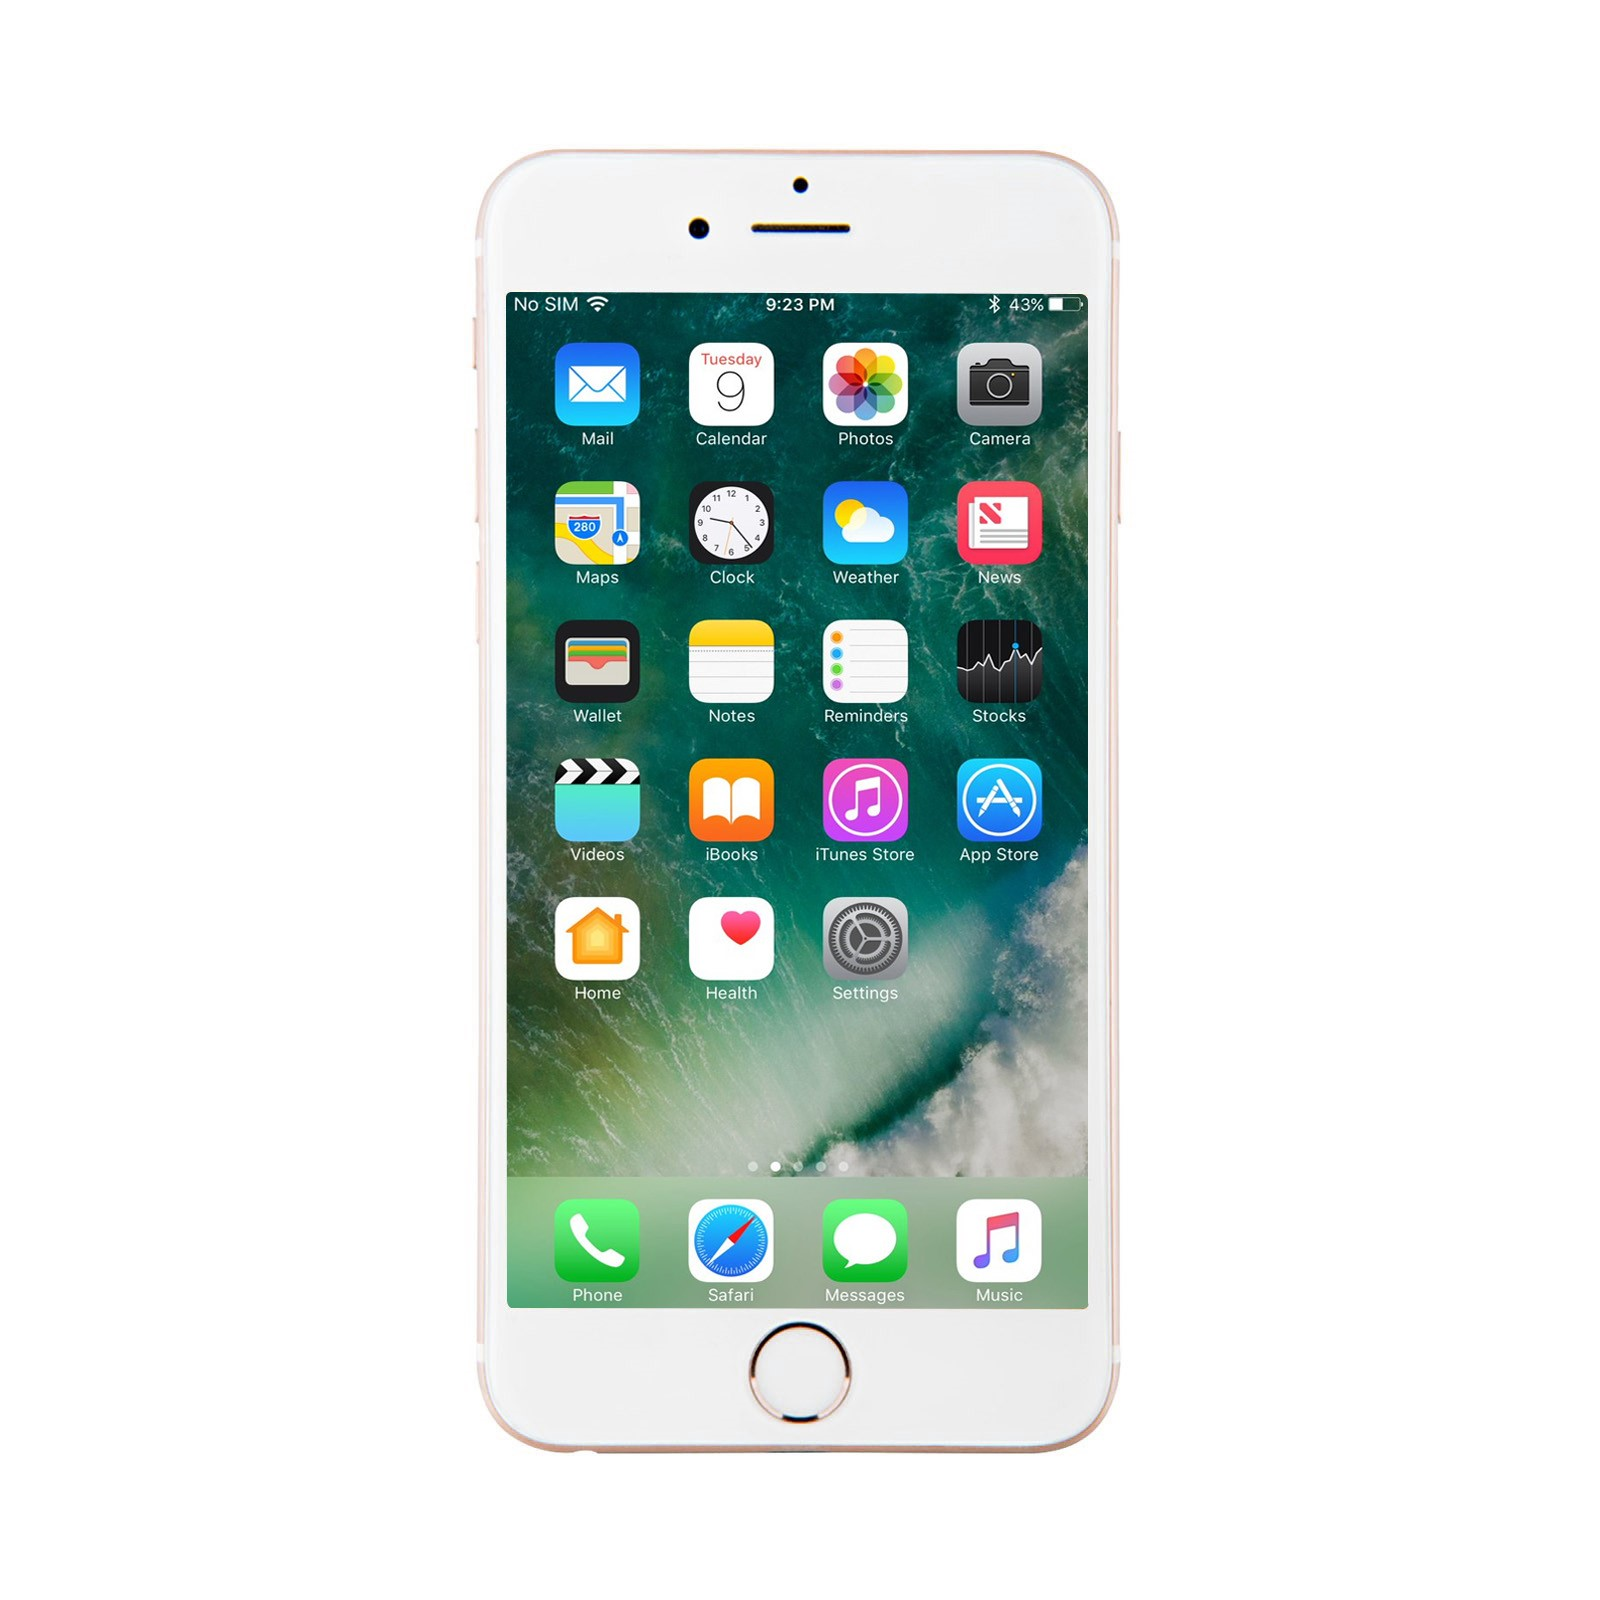 apple iphone 6s gsm factory unlocked 4g lte 8mp camera smartphone ebay. Black Bedroom Furniture Sets. Home Design Ideas